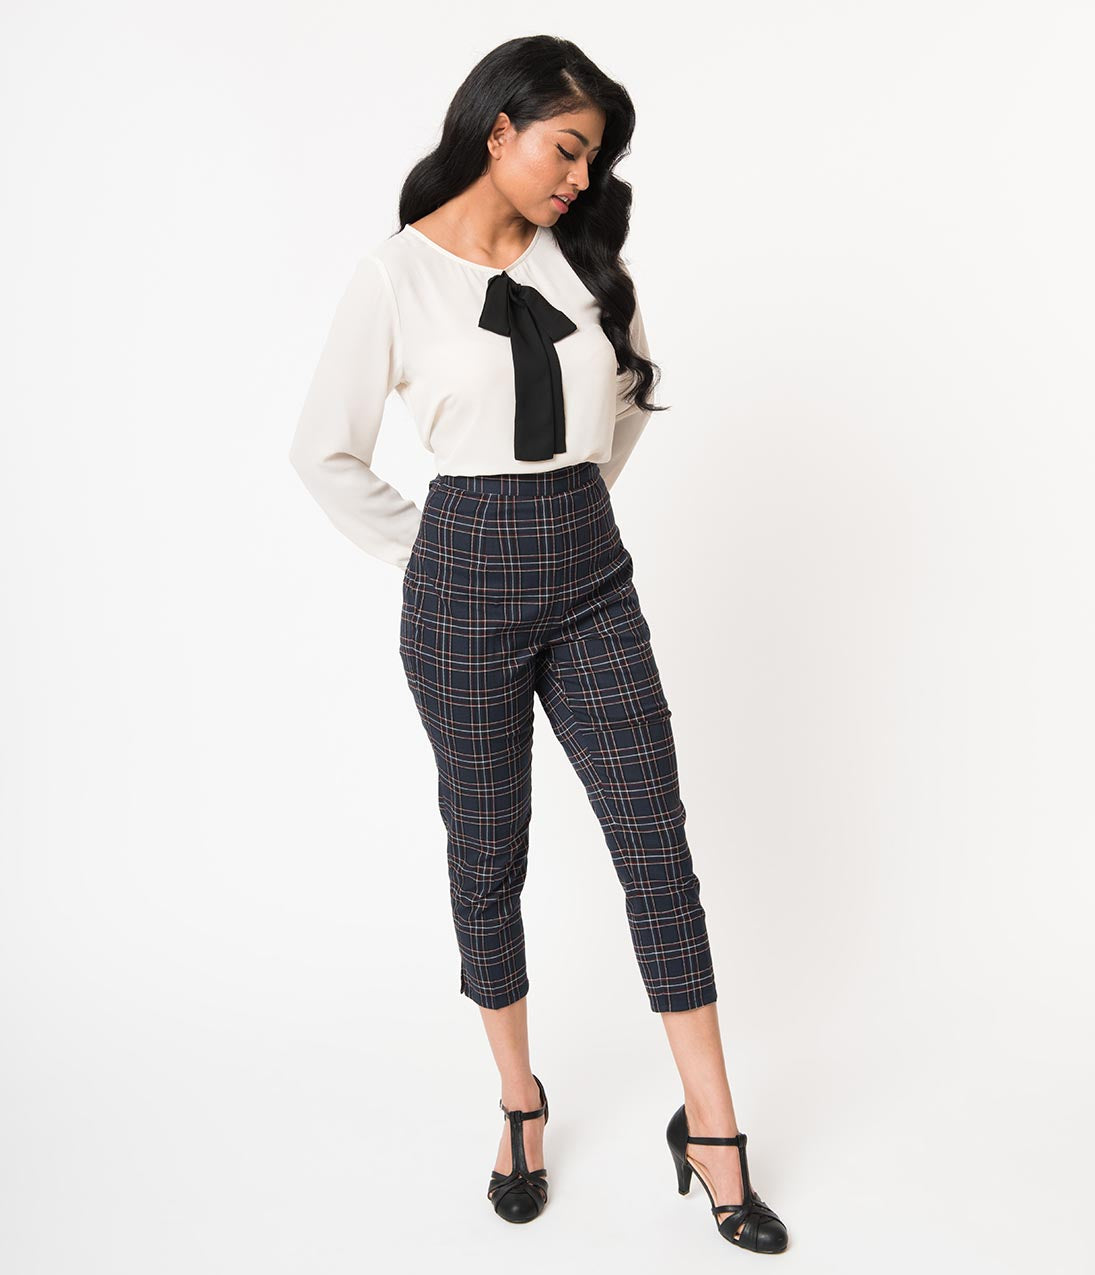 What Did Women Wear in the 1950s? 1950s Fashion Guide Hell Bunny 1950S Style Navy Blue Plaid Peebles Cigarette Trousers $42.00 AT vintagedancer.com